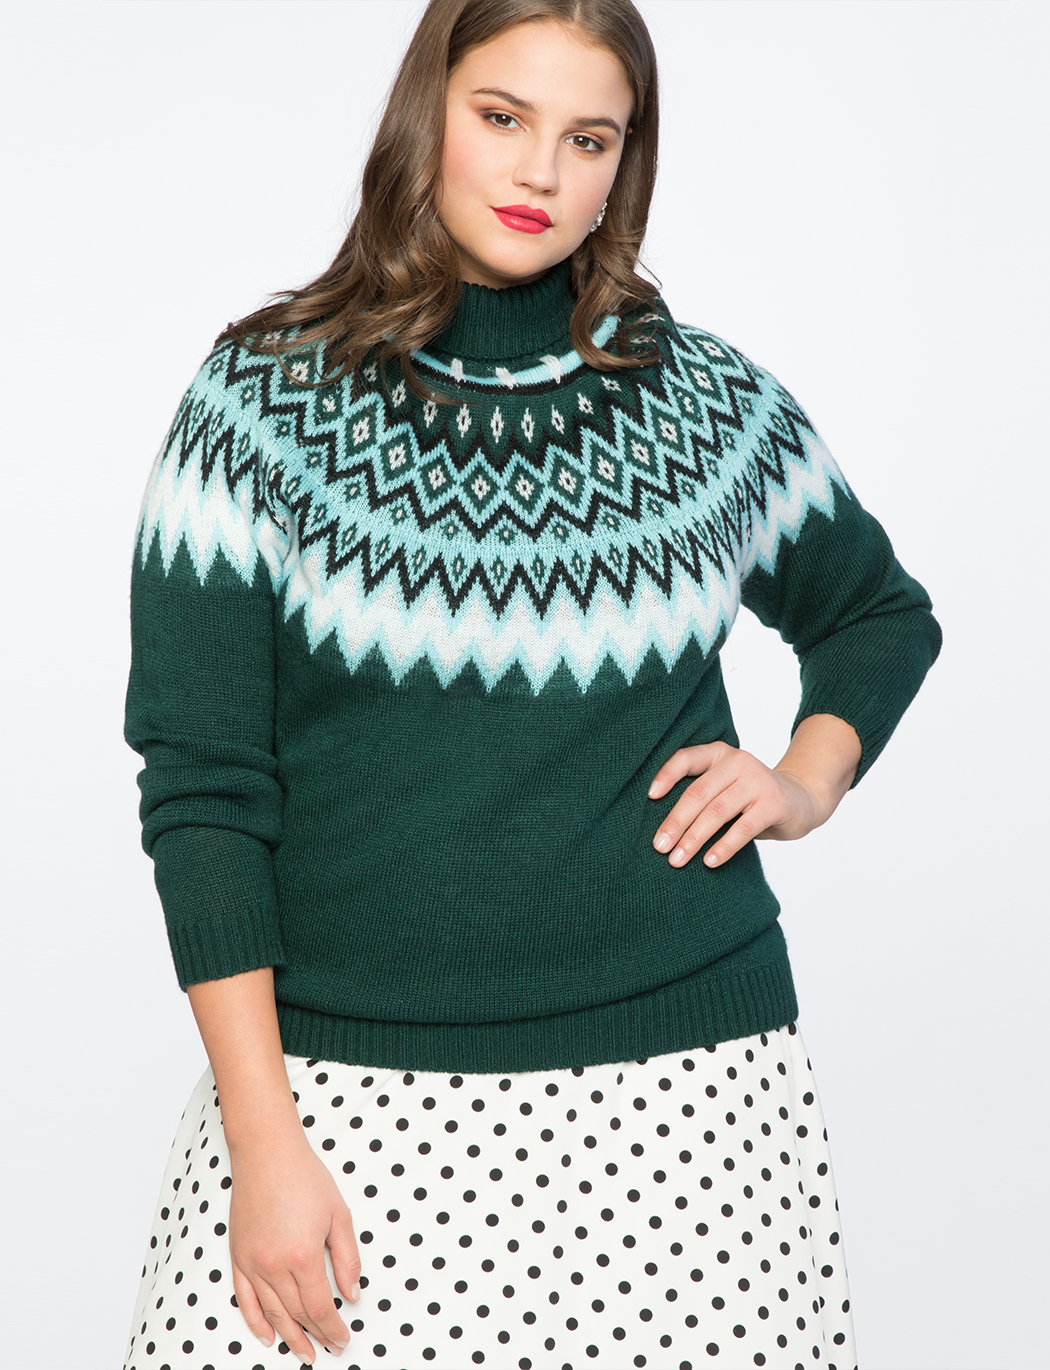 Fair Isle Sweater | Women's Plus Size Tops | ELOQUII